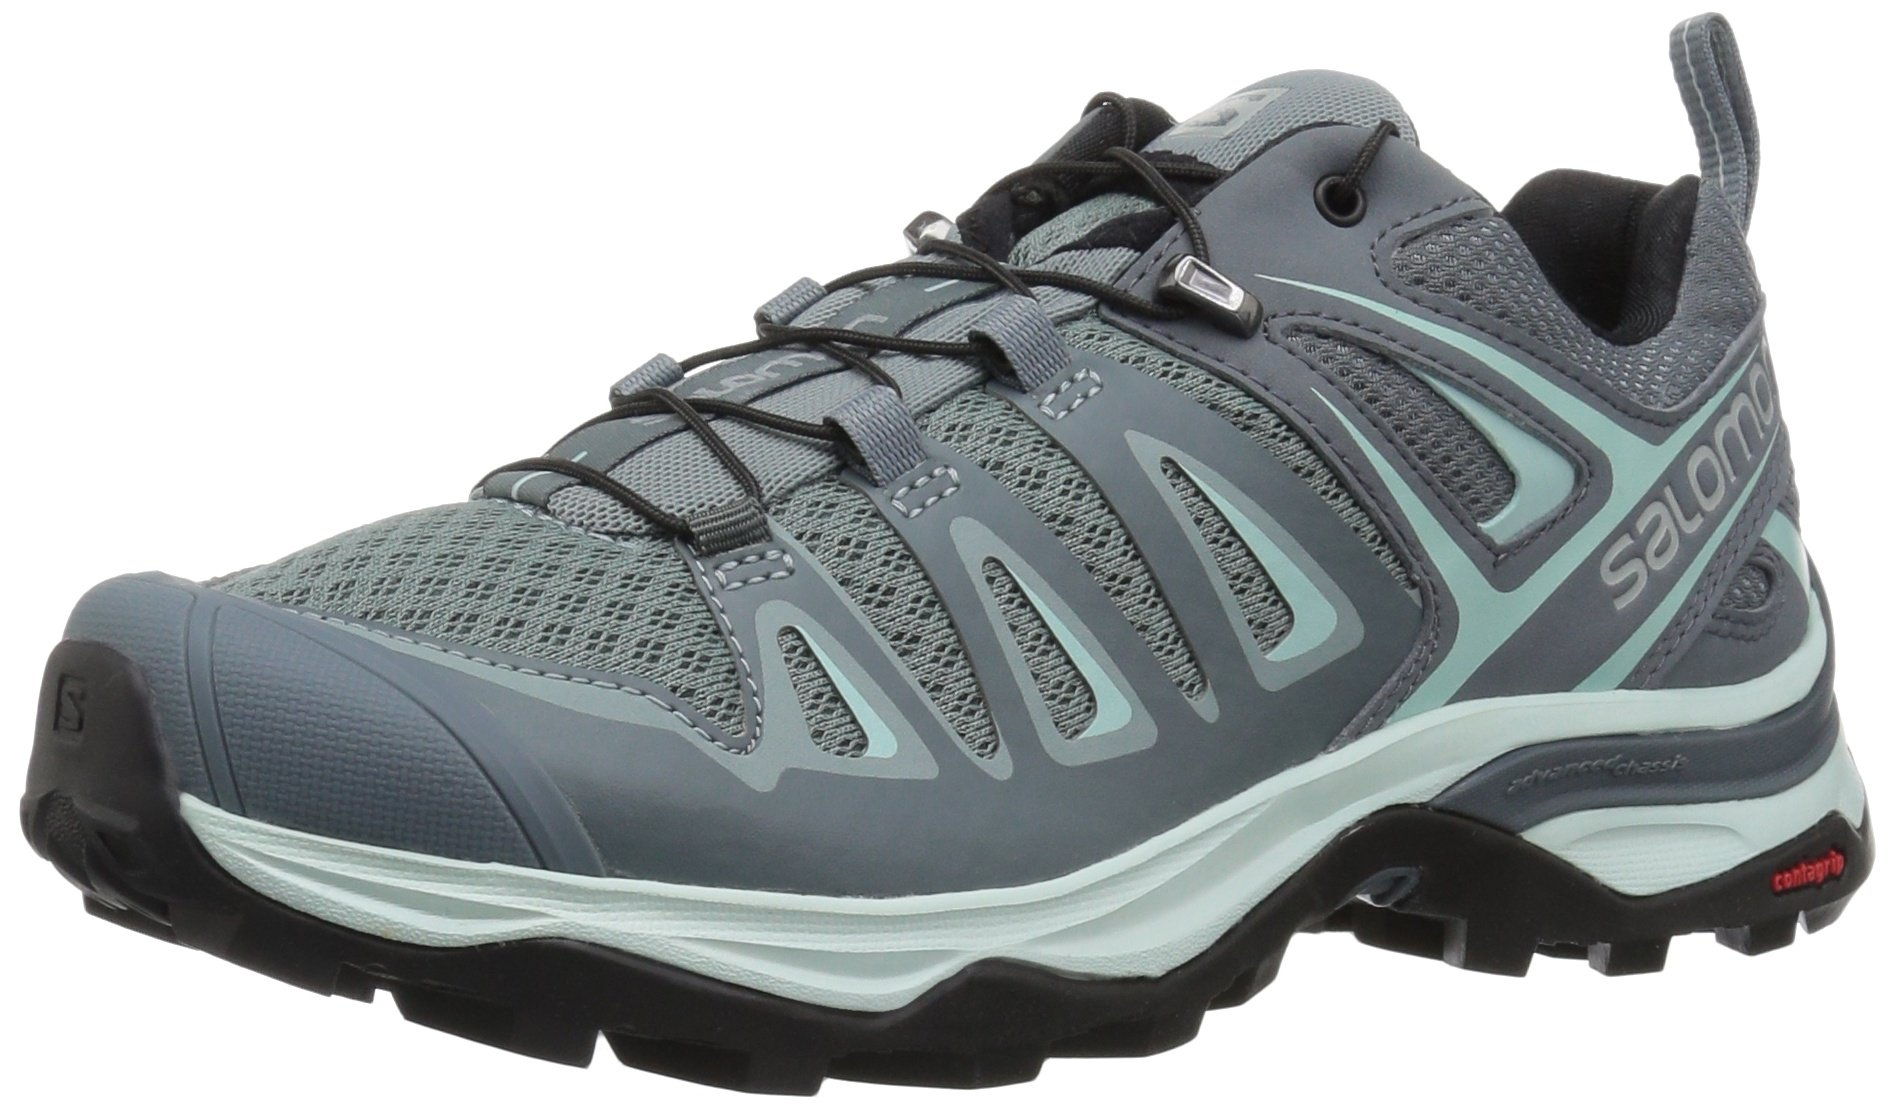 SALOMON Women's X Ultra 3 W Trail Running Shoe, Lead, 5.5 M US by SALOMON